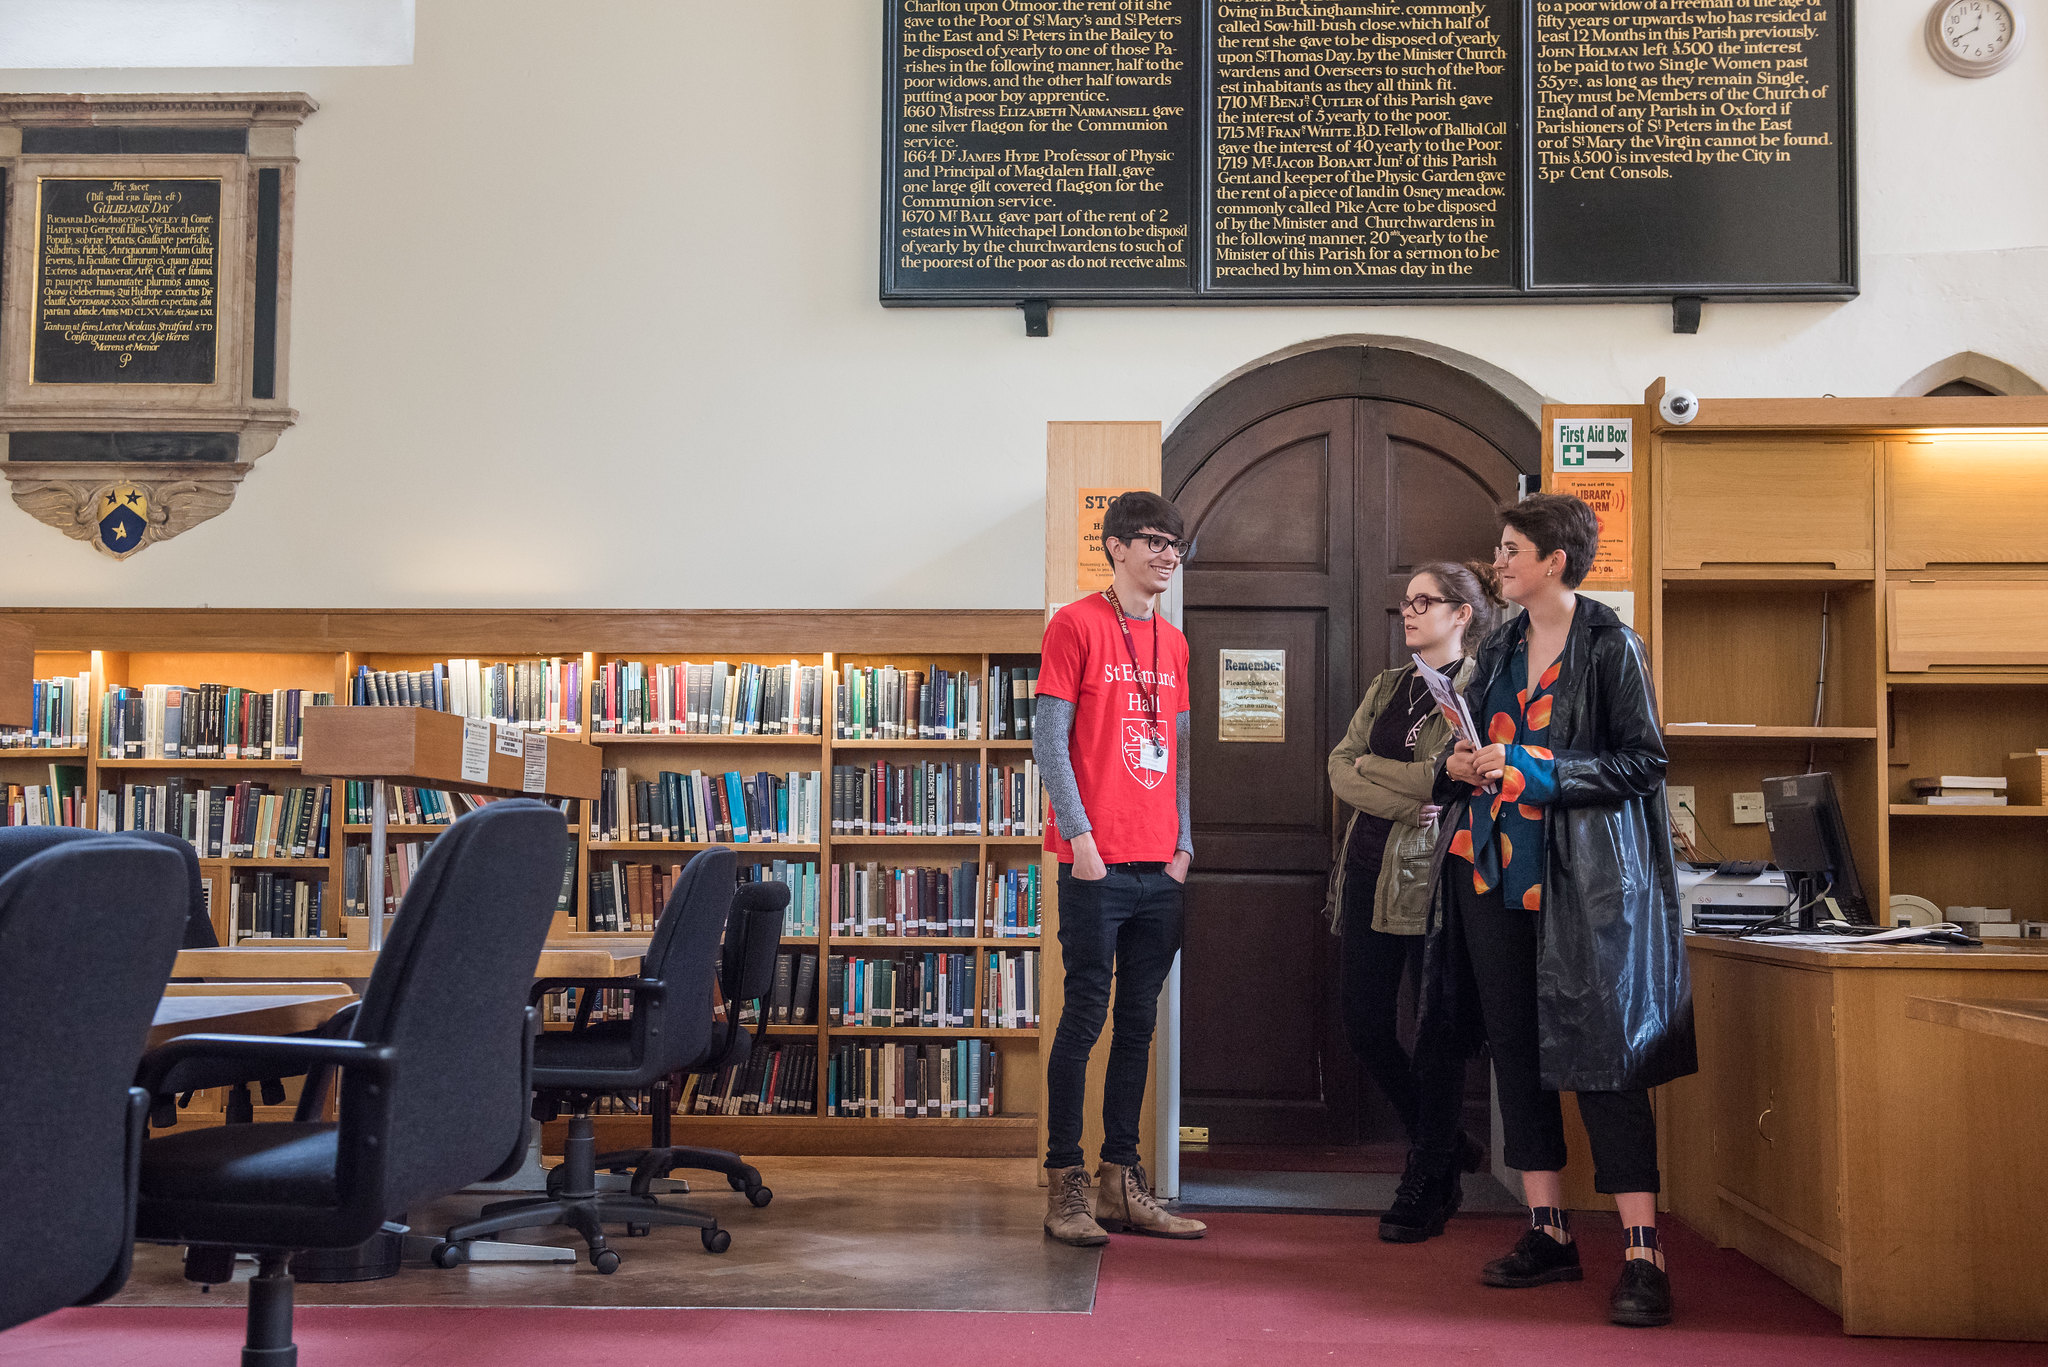 Prospective student and parent being shown St Edmund Hall library.